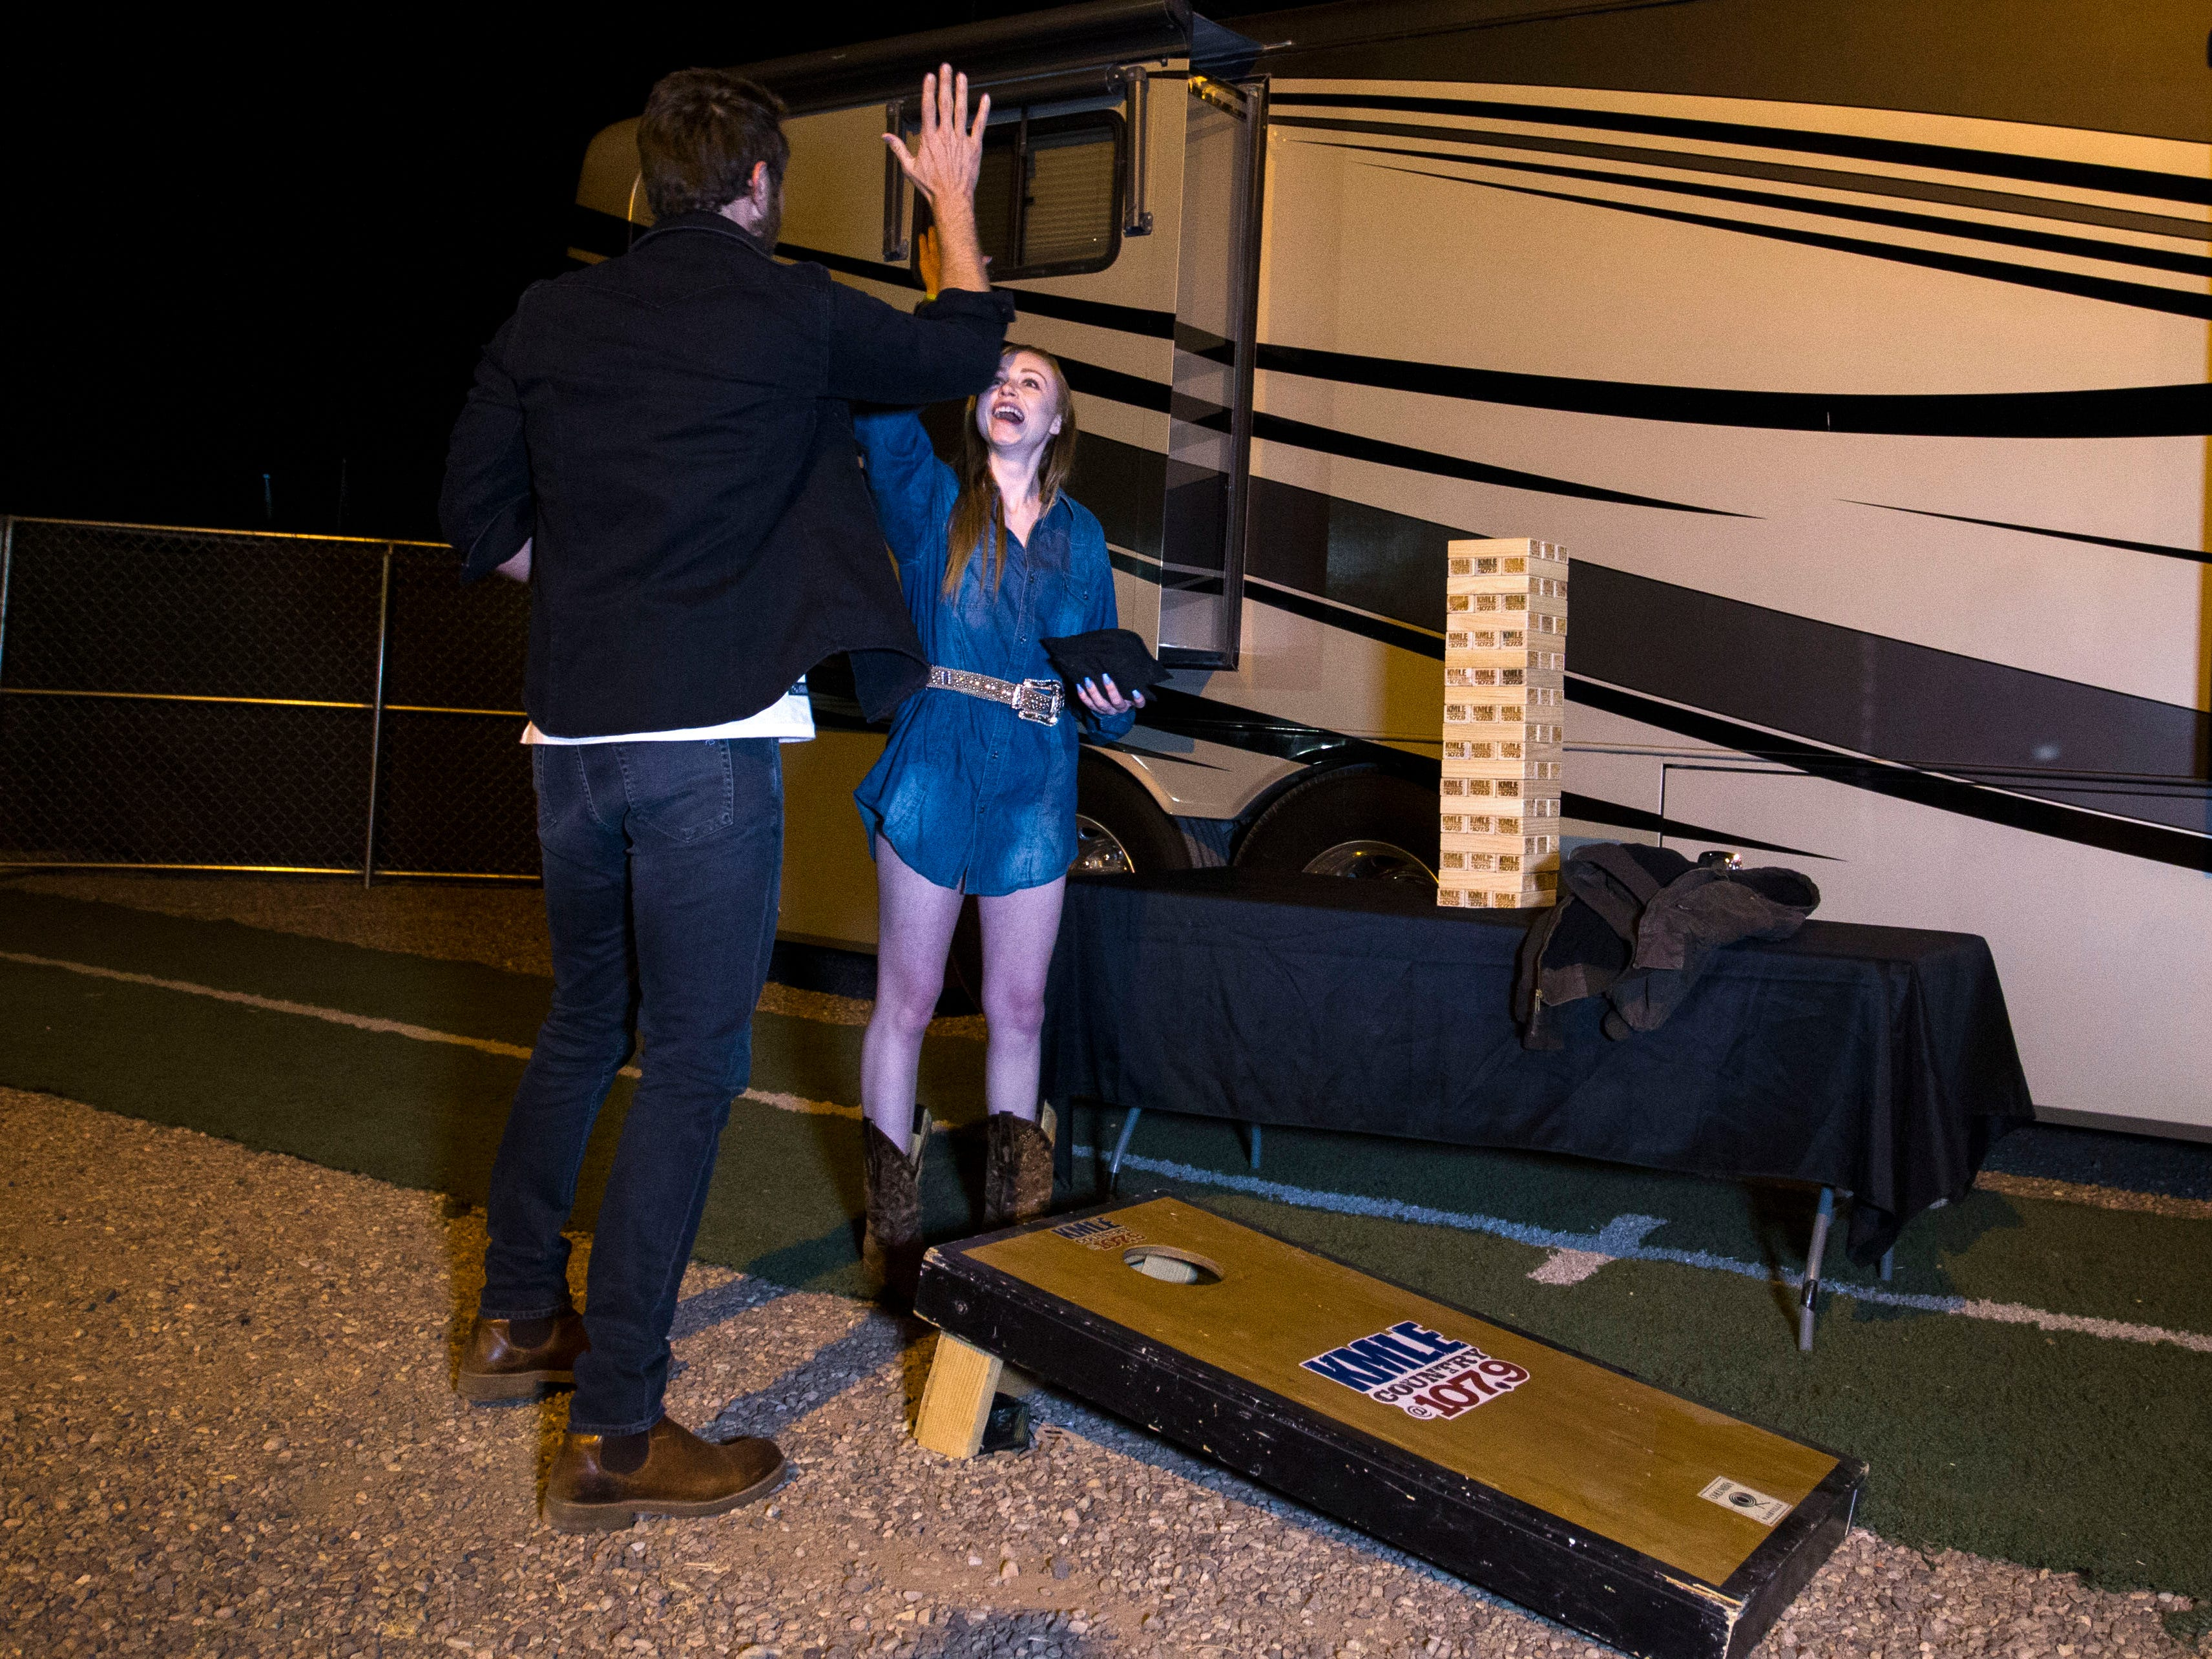 Country superstar Brett Eldredge high-fives his teammate Kayla Coffey of Tucson, who was picked from the audience for the chance meeting with Eldredge while at Country Thunder Arizona on April 11, 2019, in Florence, Ariz.